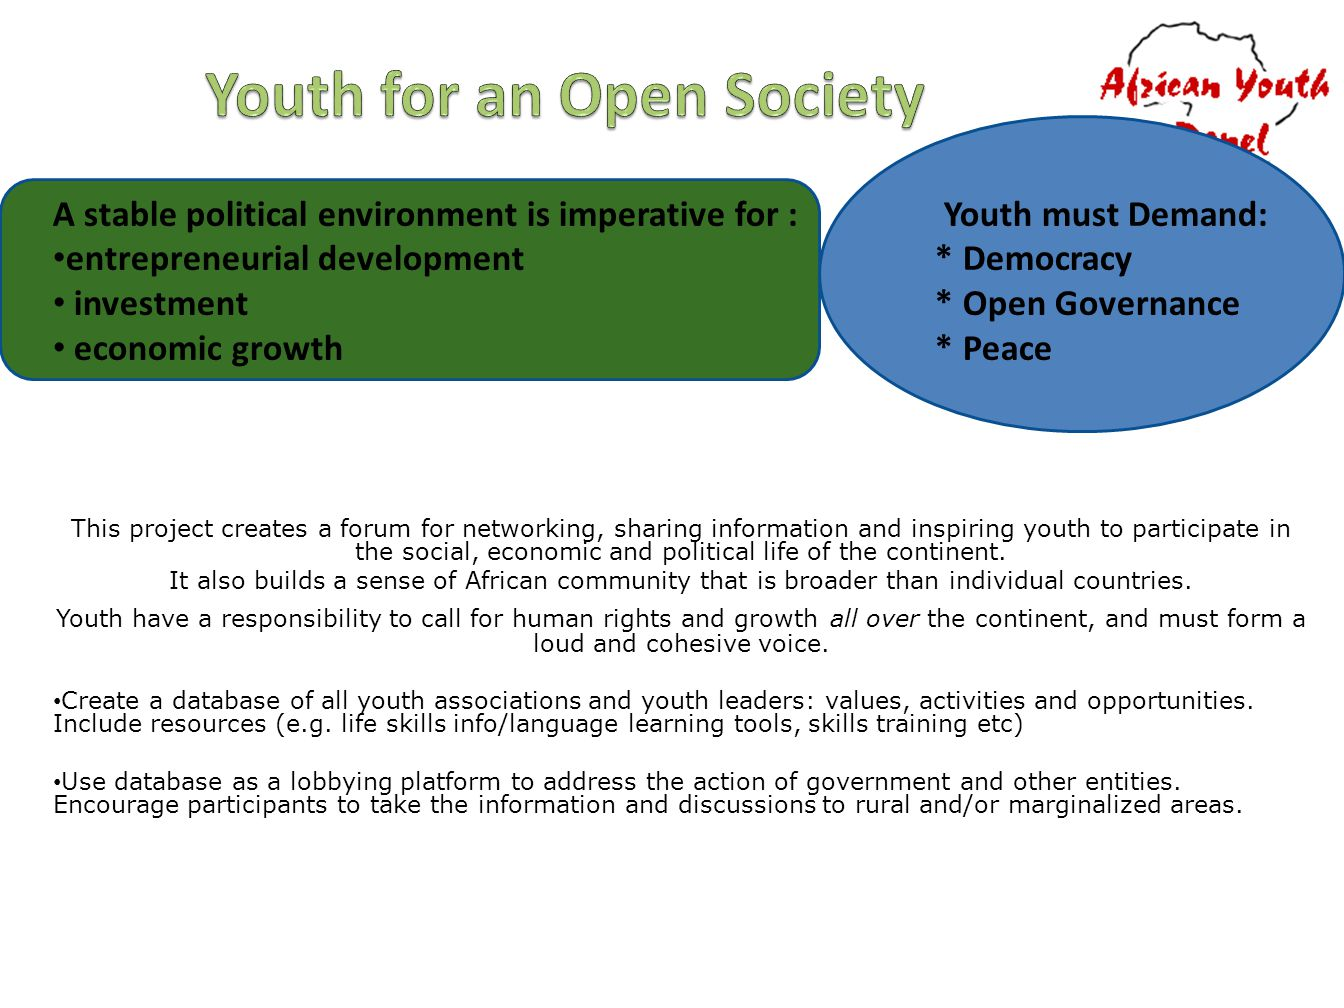 A stable political environment is imperative for : Youth must Demand: entrepreneurial development * Democracy investment * Open Governance economic growth * Peace This project creates a forum for networking, sharing information and inspiring youth to participate in the social, economic and political life of the continent.